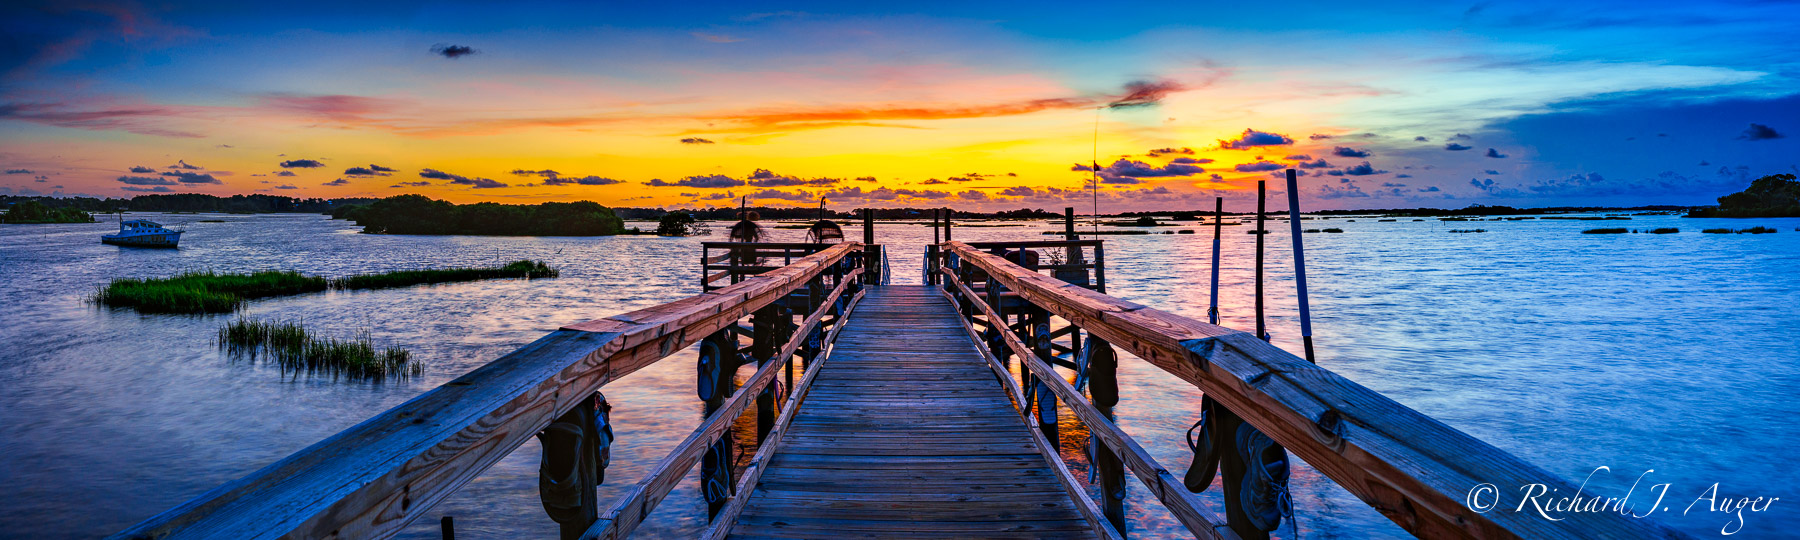 Cedar Key, Florida, dock, sunset, coastal, Jetty, Bay, Water, Panorama